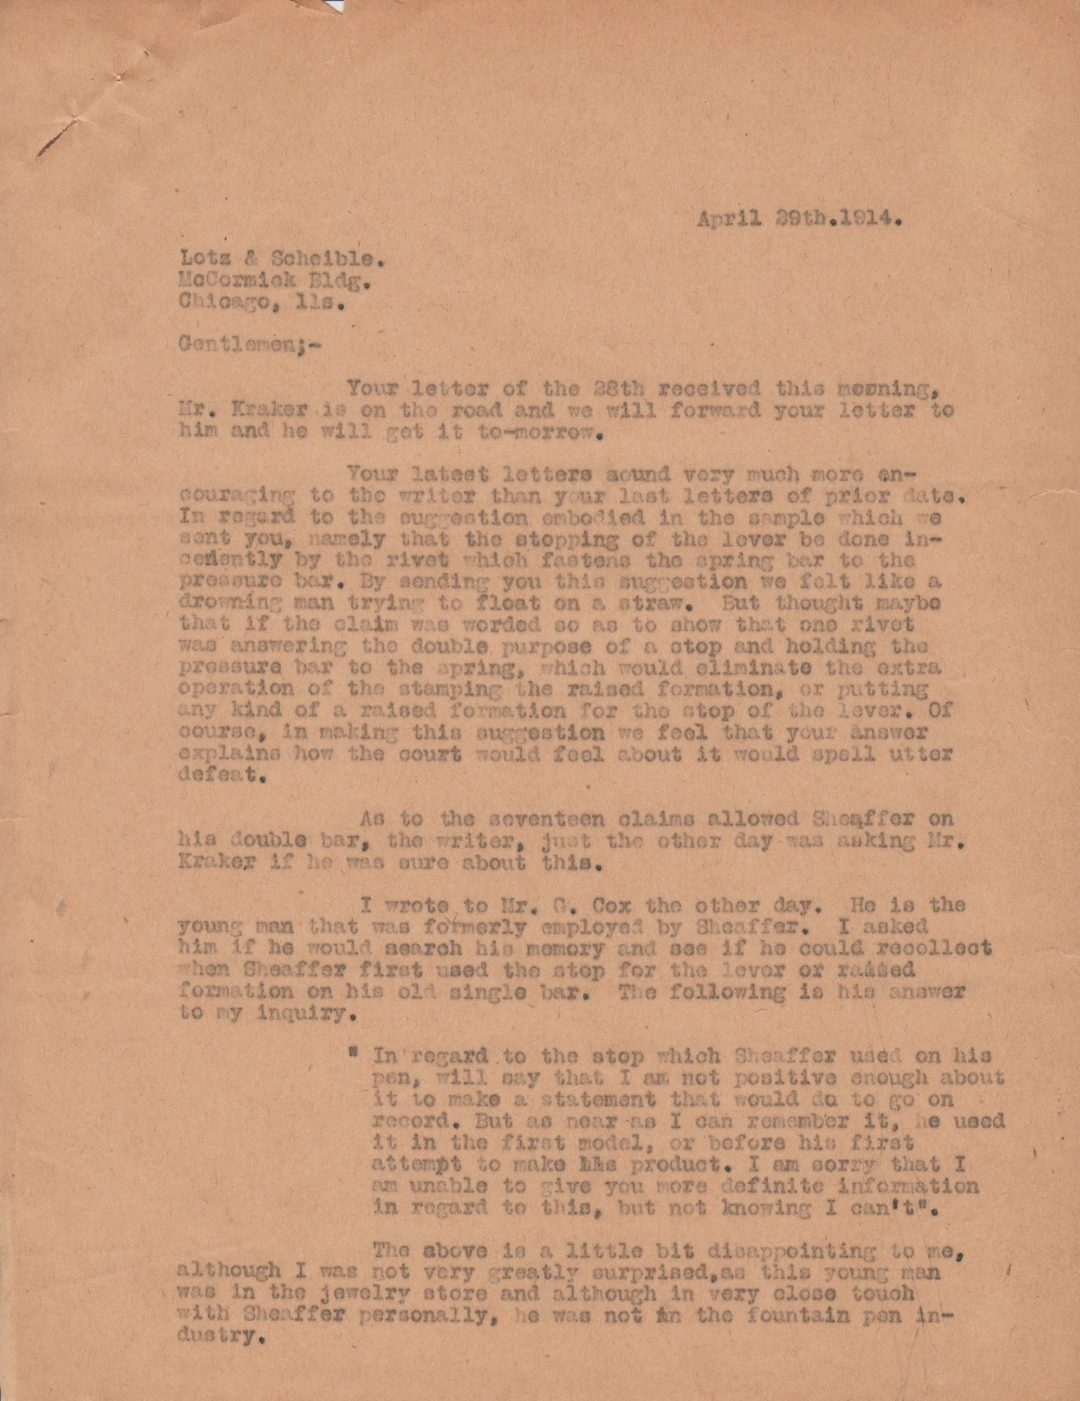 Letter by Harvey Craig 1914-04-29